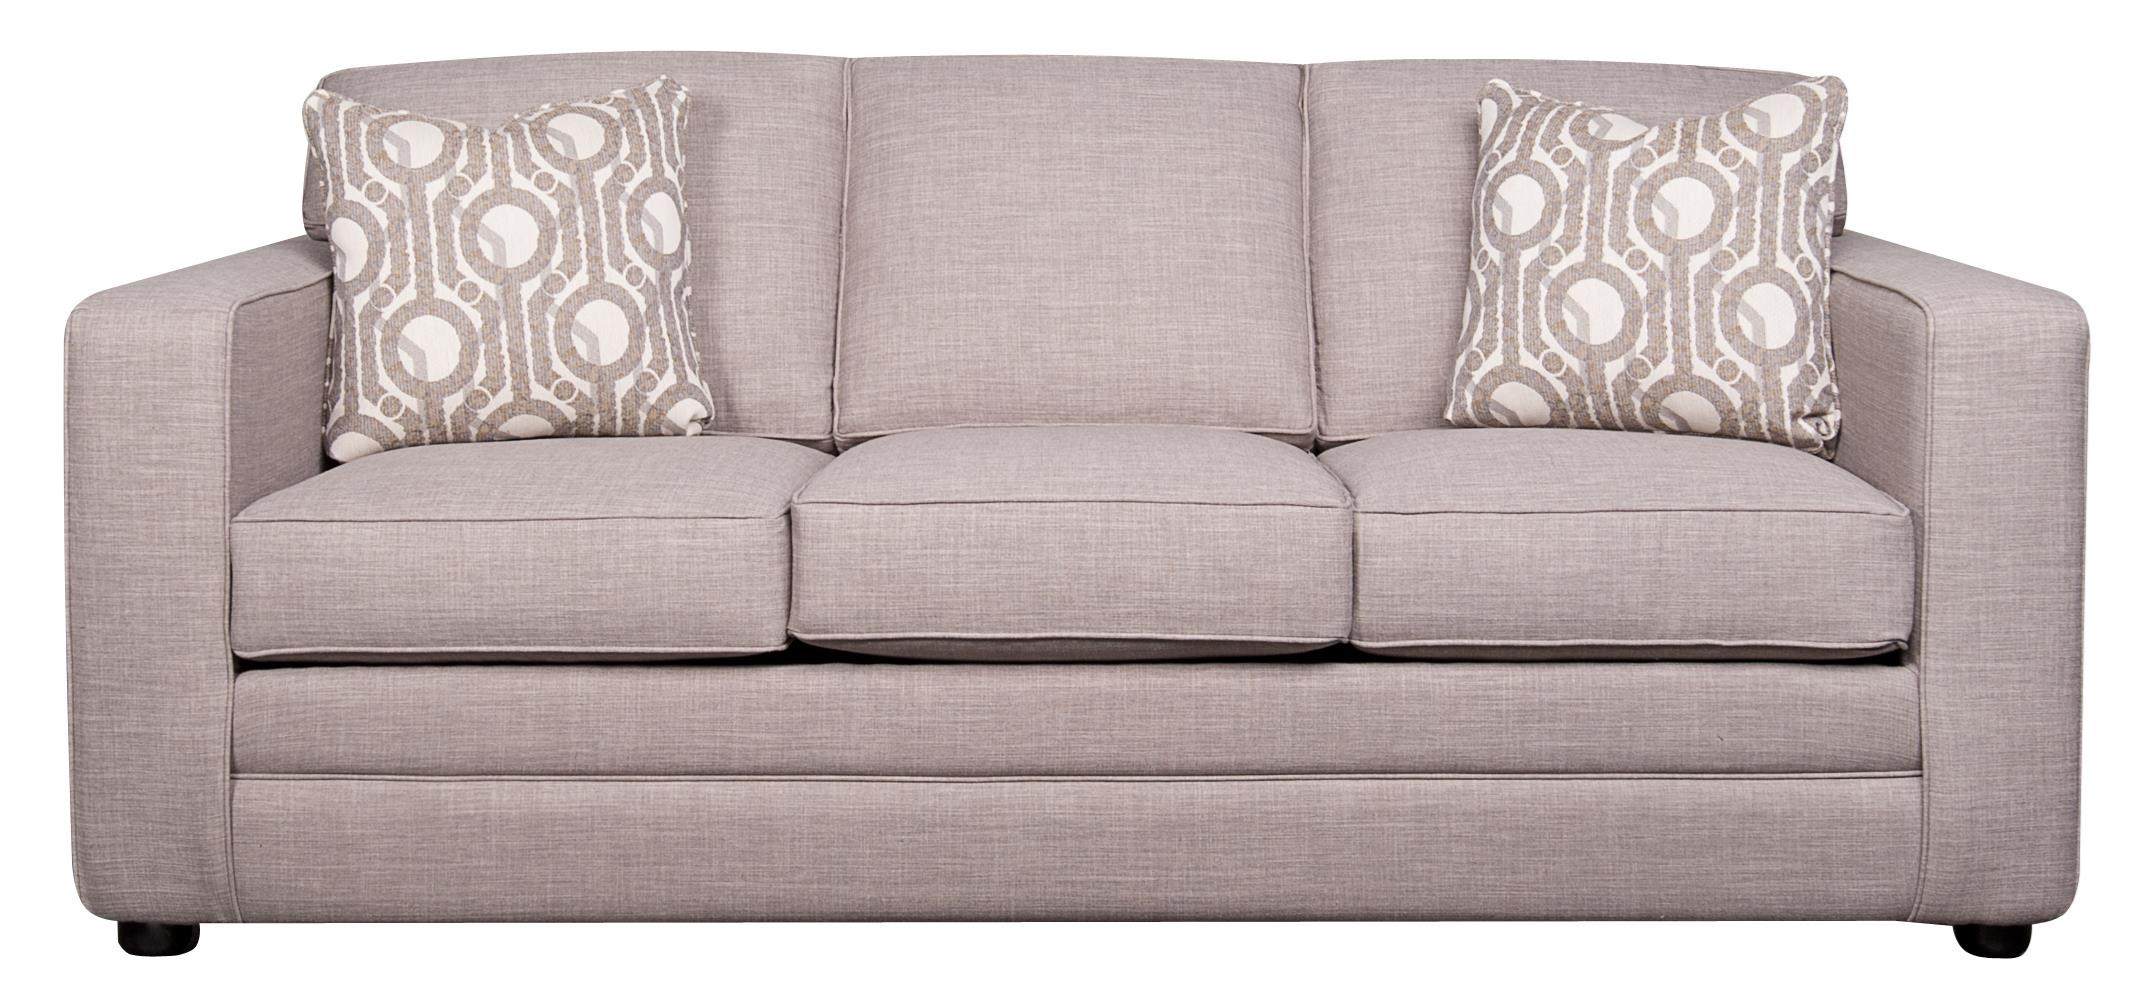 Elliston Place Vera Queen Sleeper Sofa with Memory Foam Morris